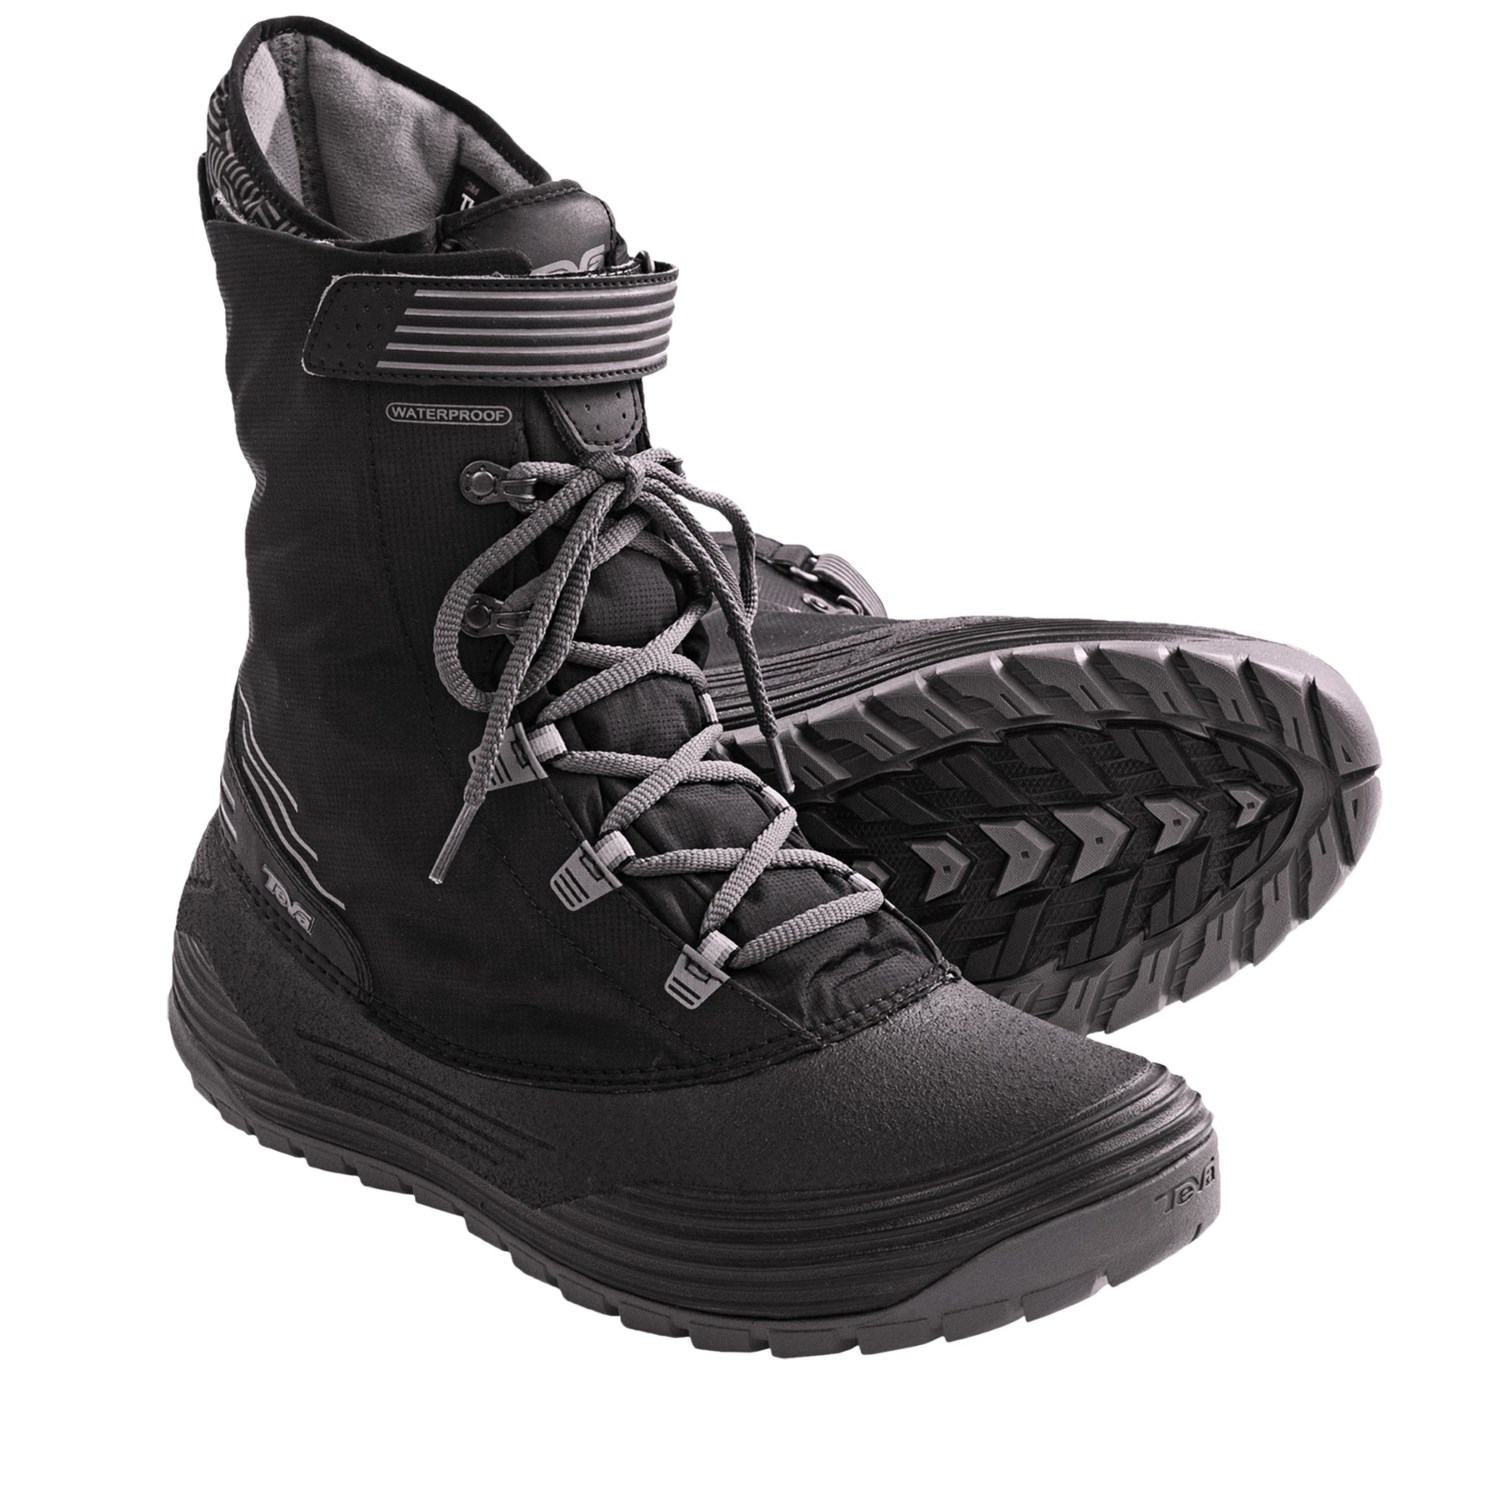 Mens Winter Boots With Removable Liners | Planetary Skin Institute